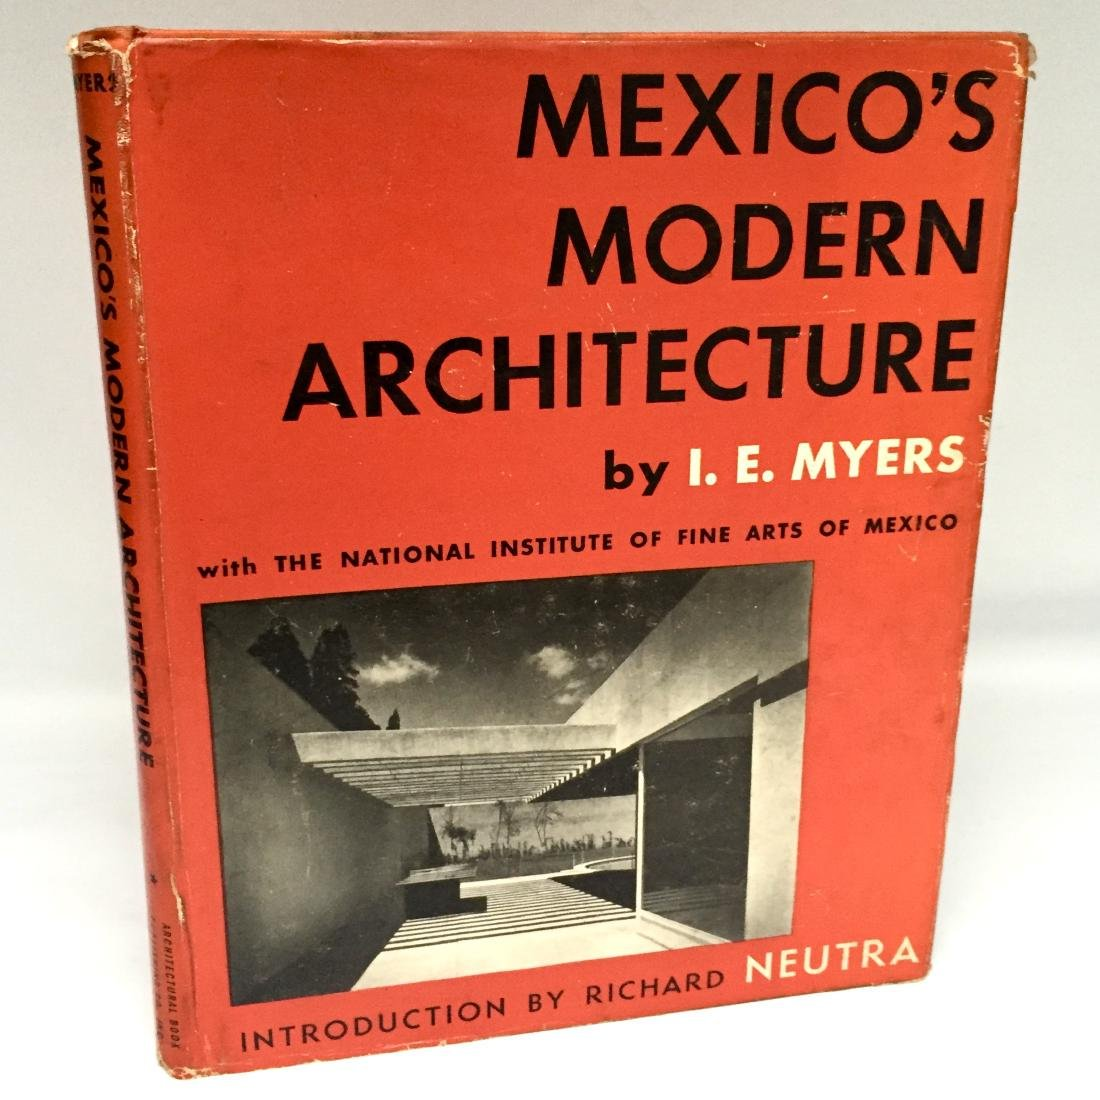 Mexico's Modern Architecture I.E. Myers 1952 First Ed